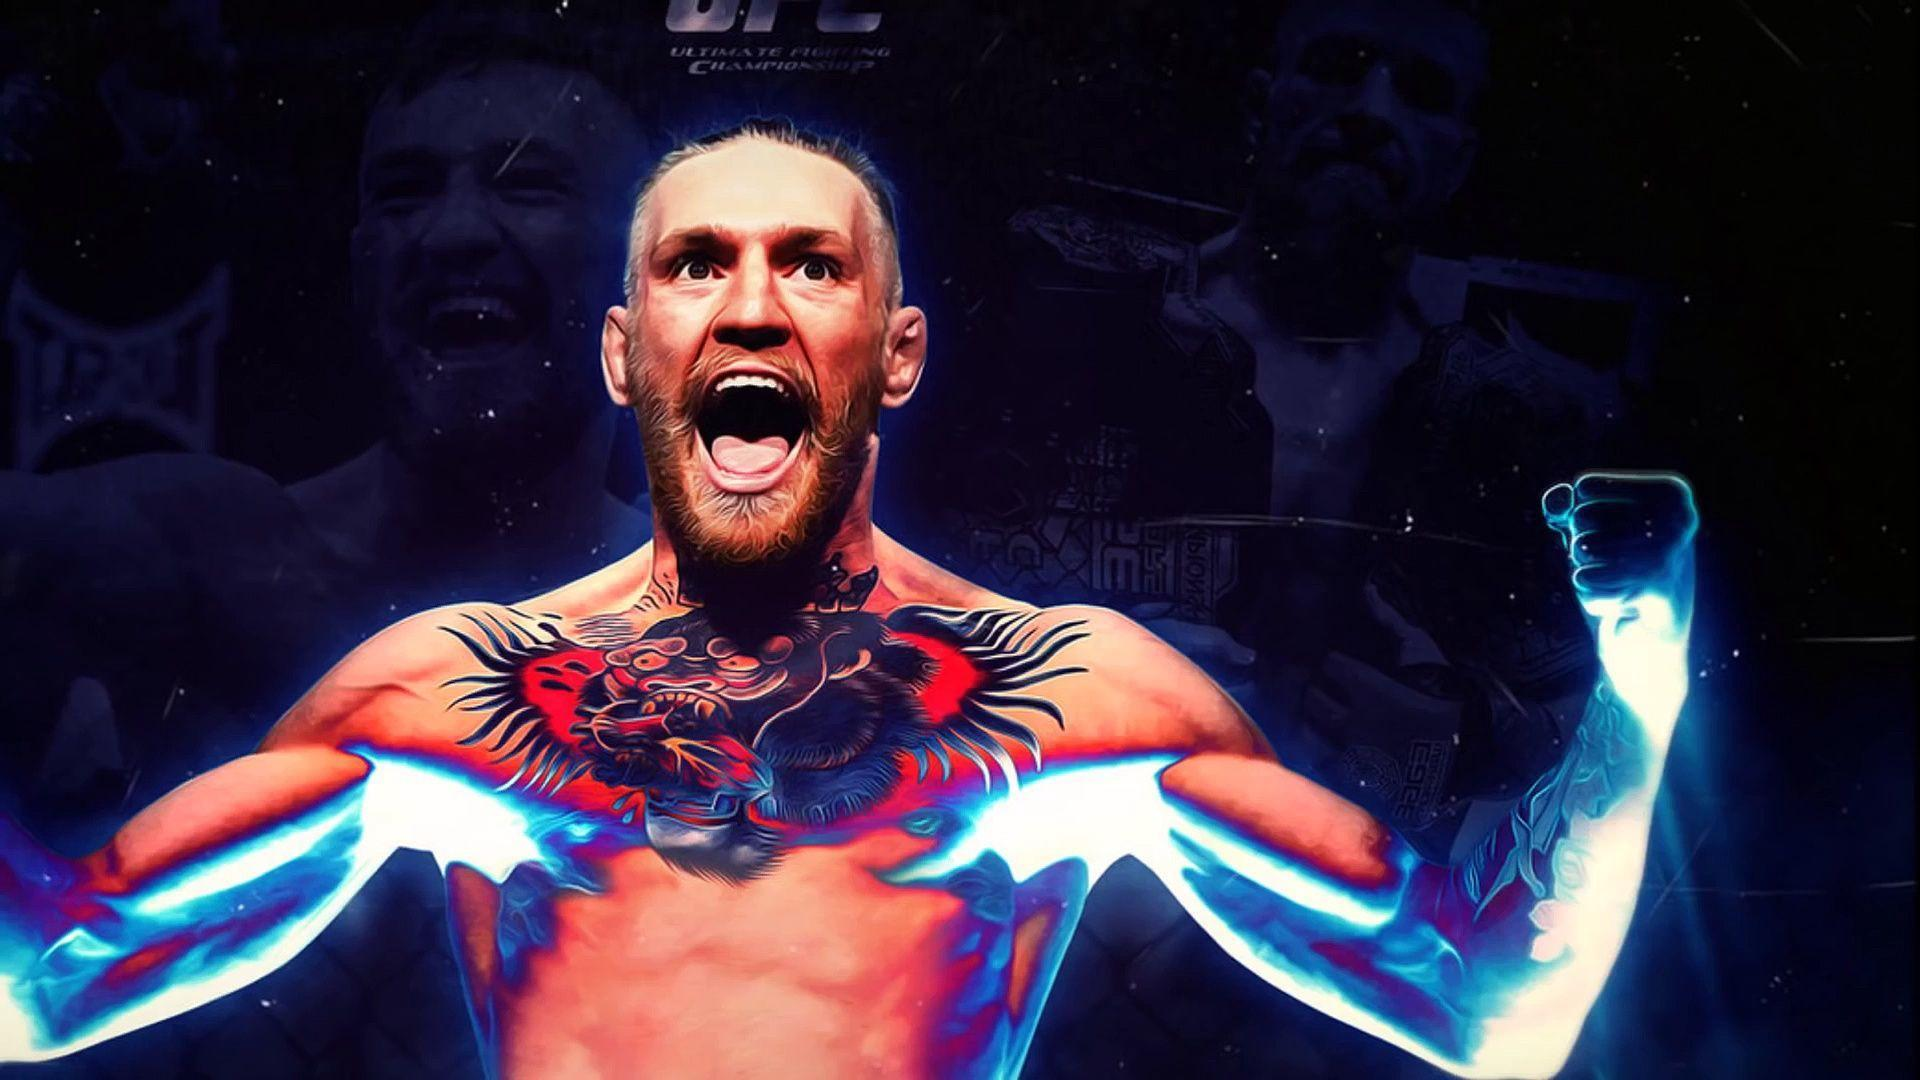 Conor McGregor HD Wallpapers Free Download in High Quality and ...